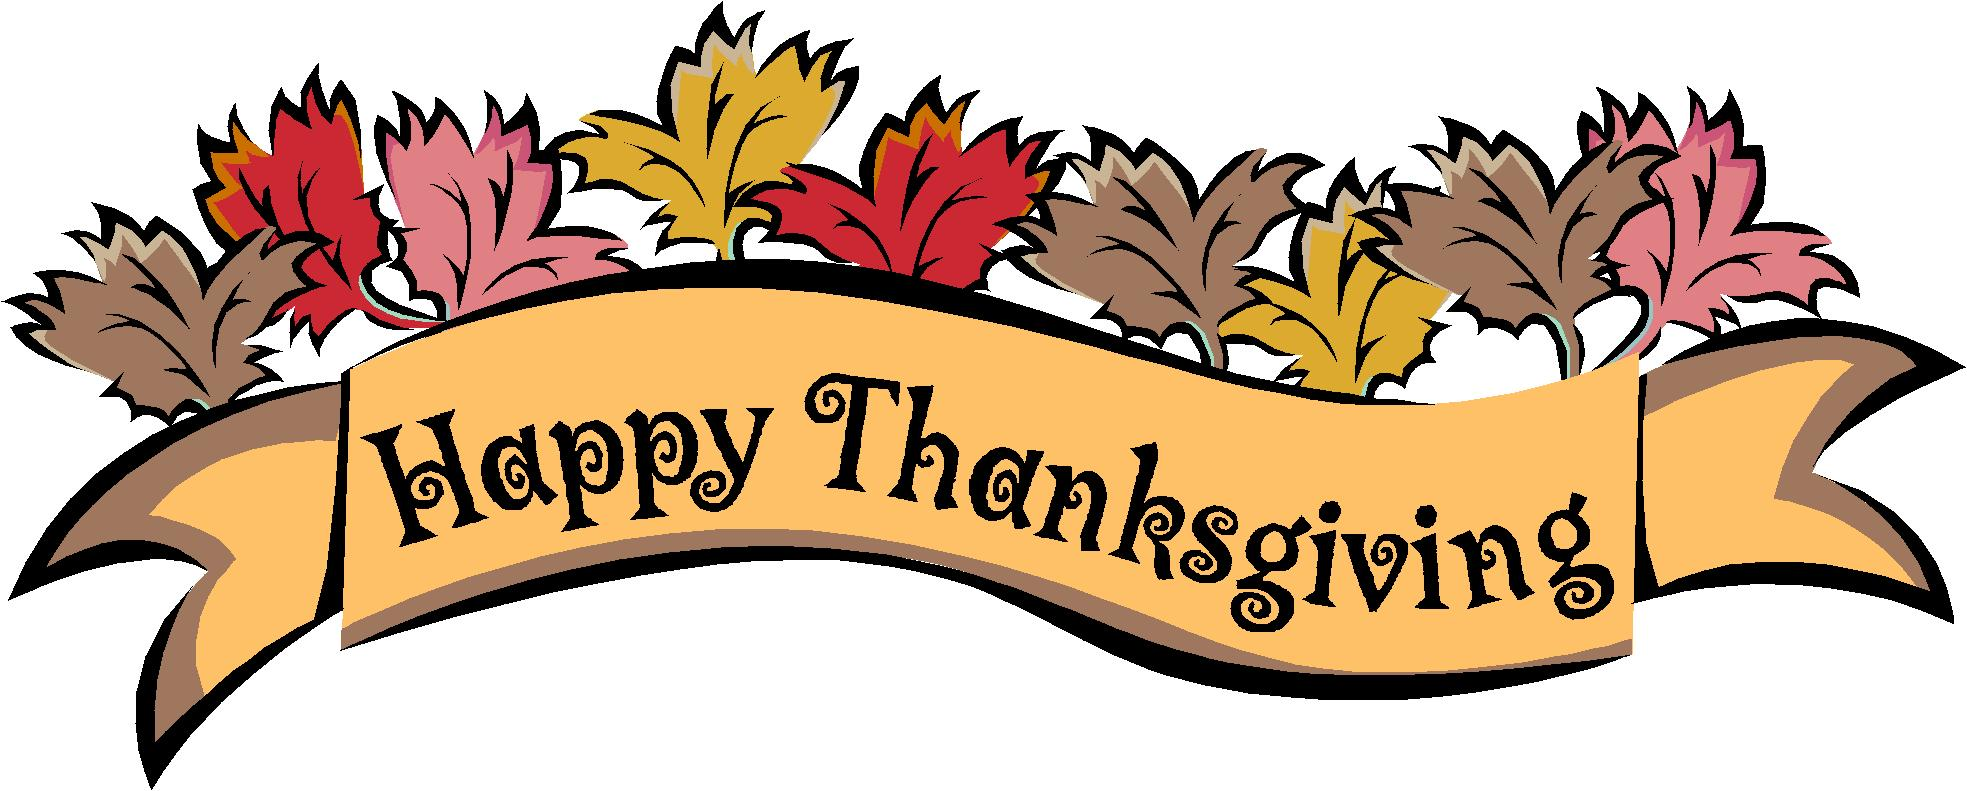 Peanut clipart happy thanksgiving Traditions  Article History The